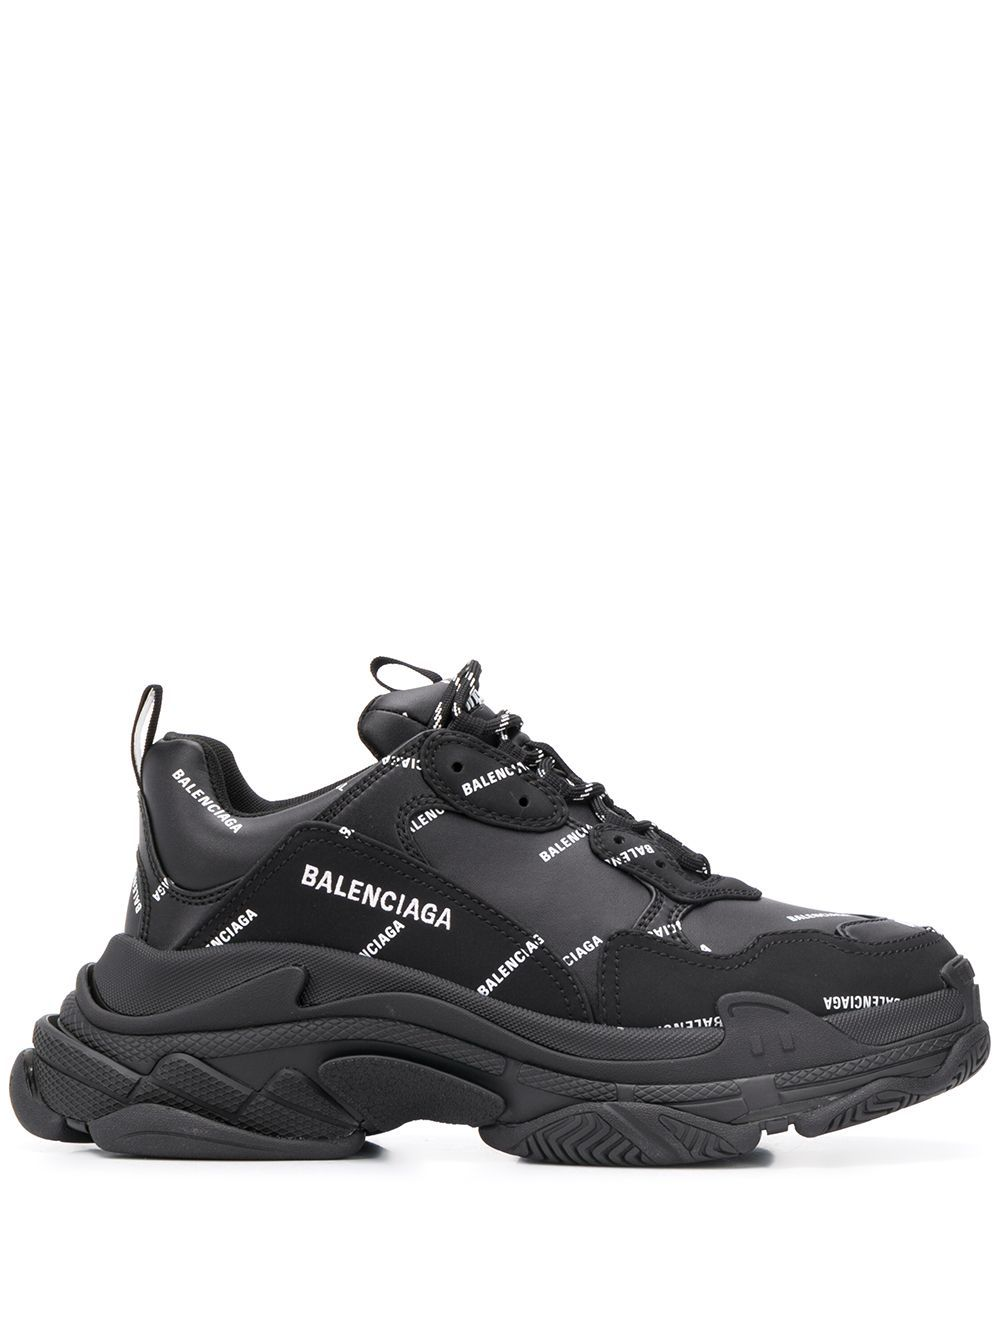 BALENCIAGA triple s all over logo sneakers black/white